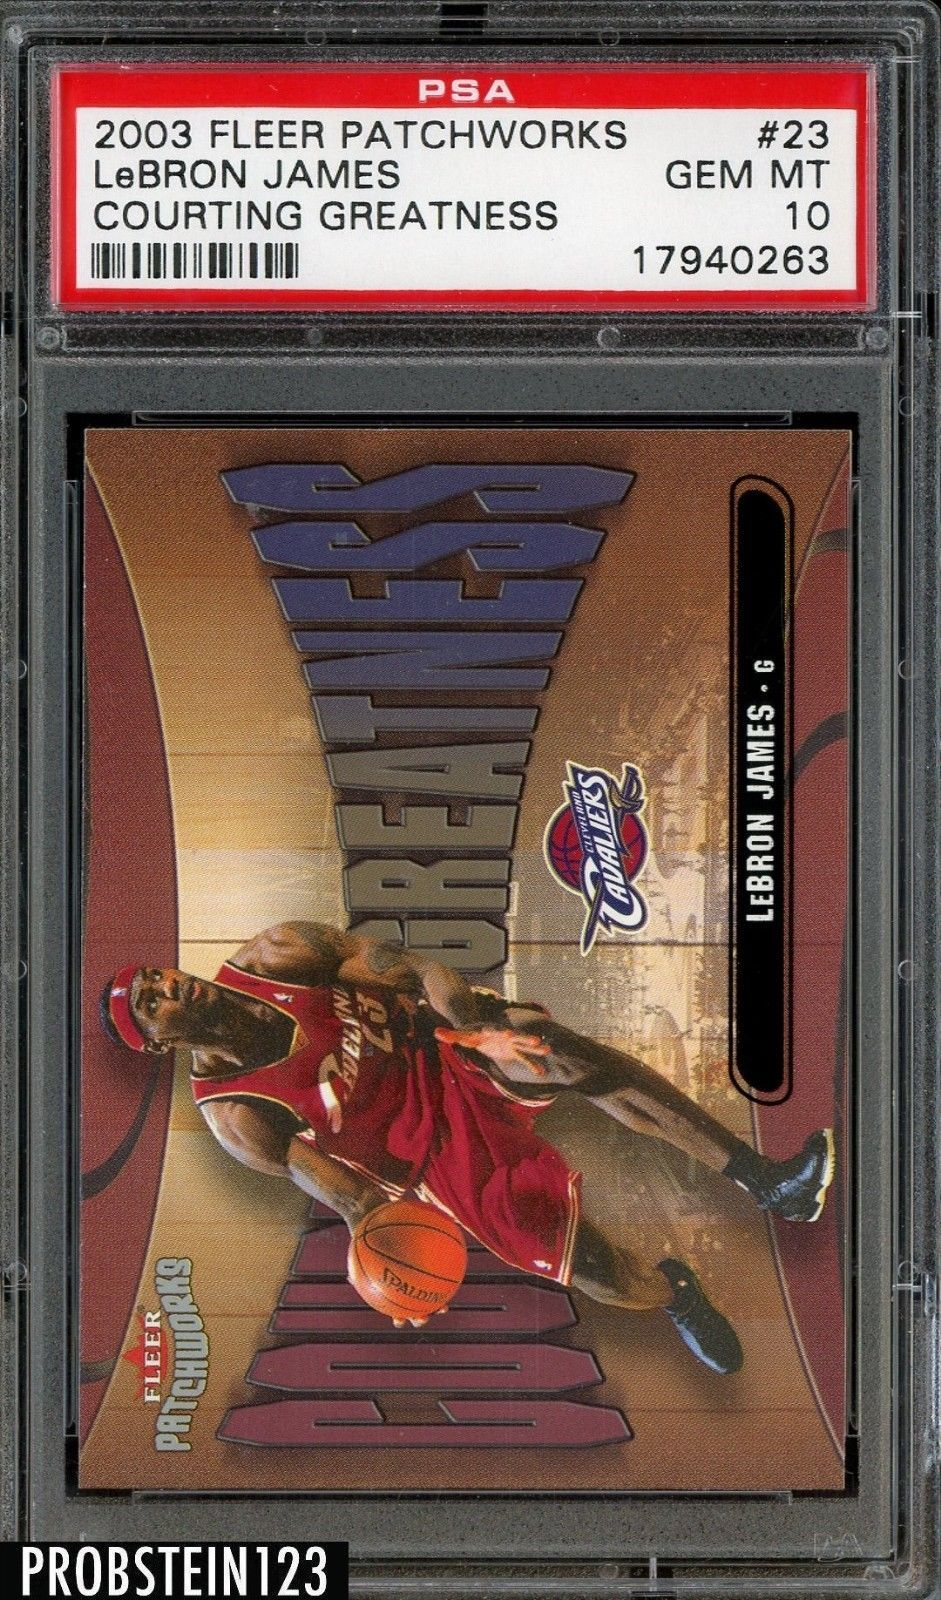 200304 fleer patchworks courting greatness 23 lebron